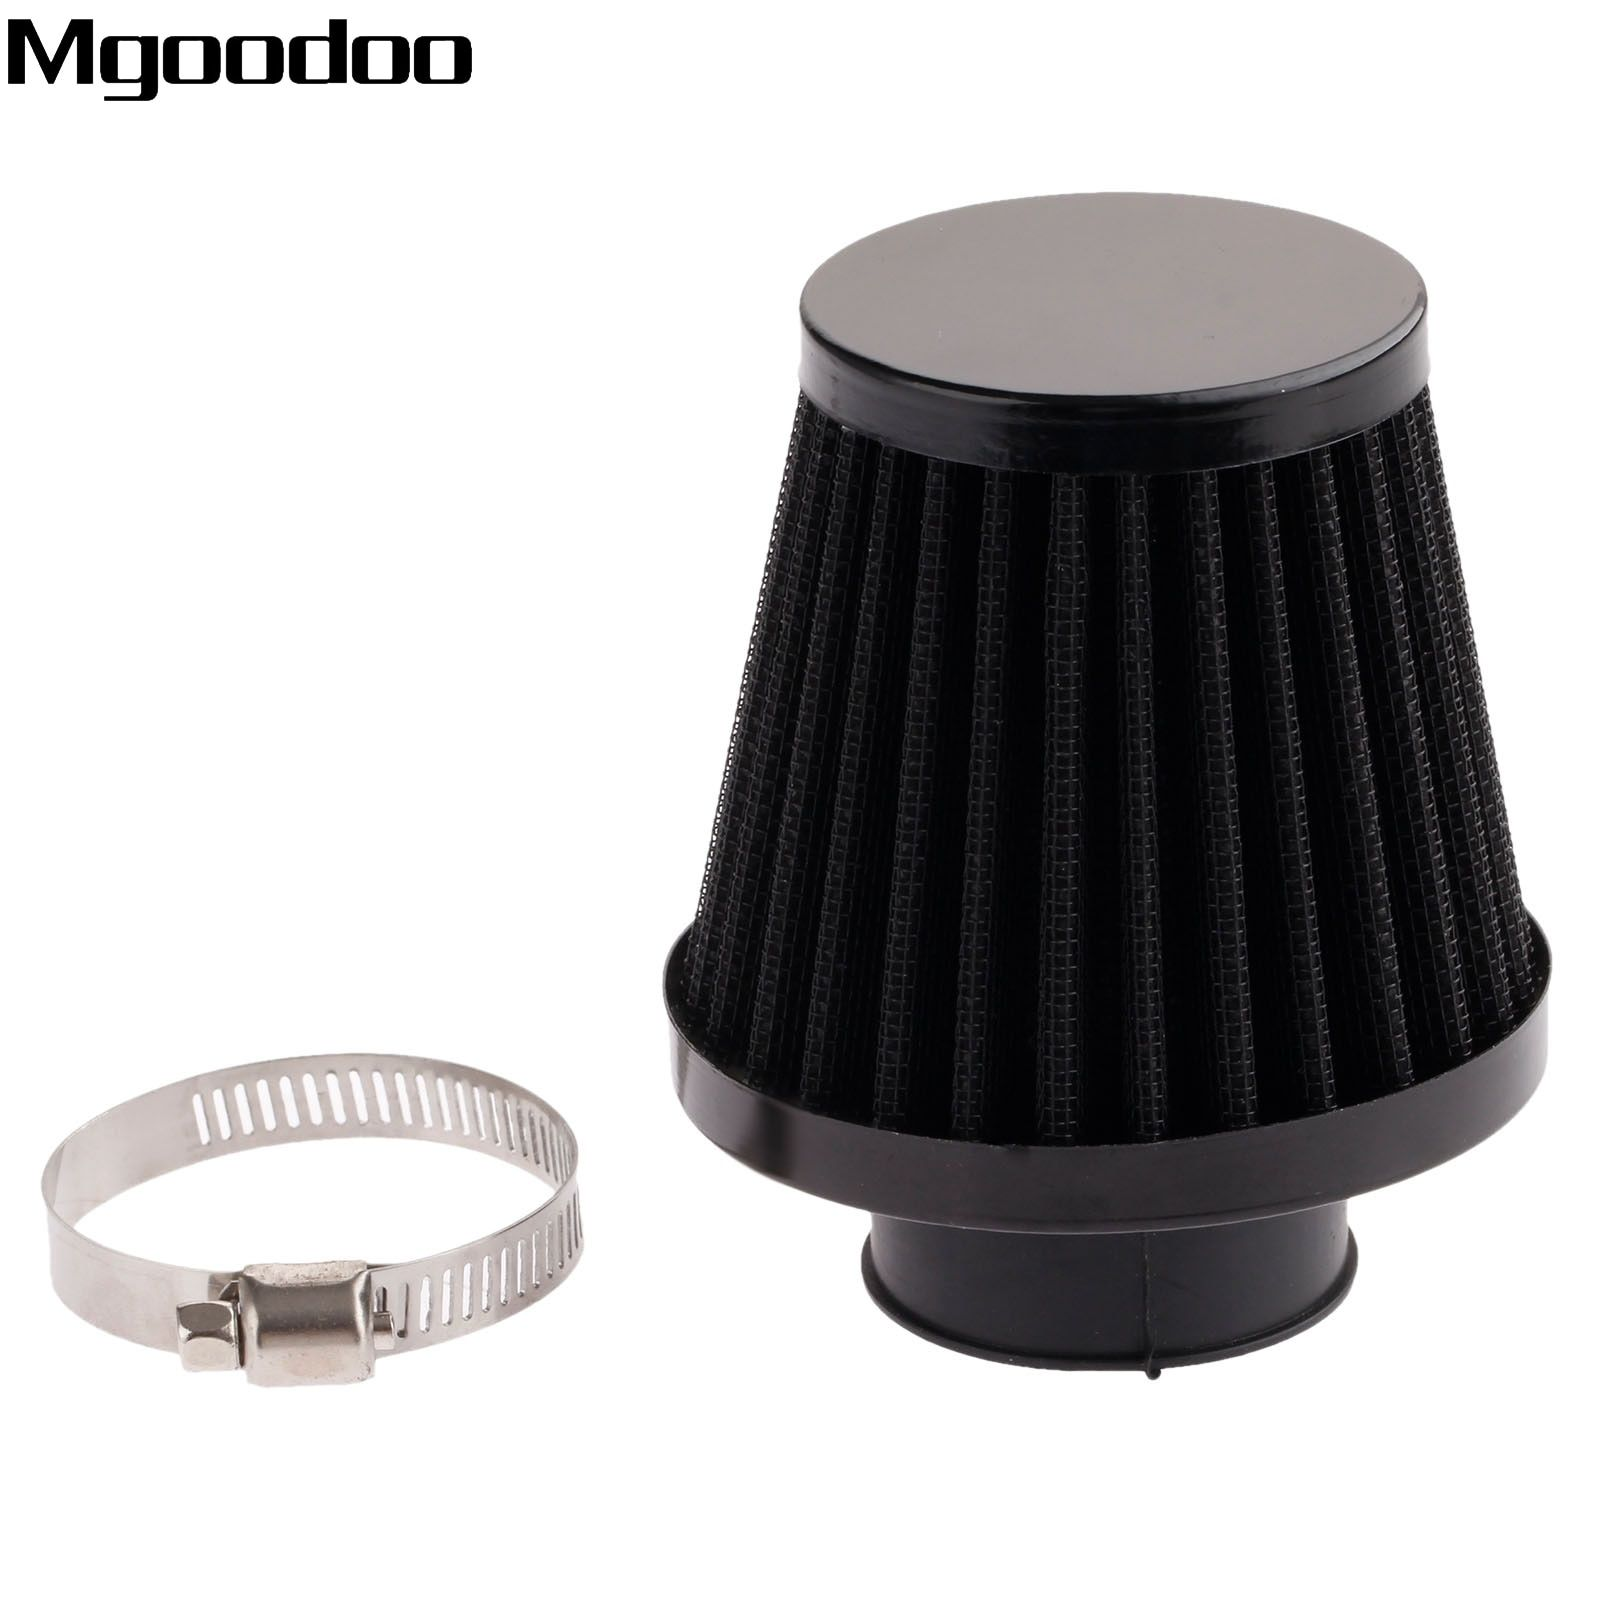 Mgoodoo 35mm Universal Motorcycle Air Filter Cleaner Clamp-on Motocross Air Pods ATV Dirt Pit Bike Scooter For Honda Suzuki KTM